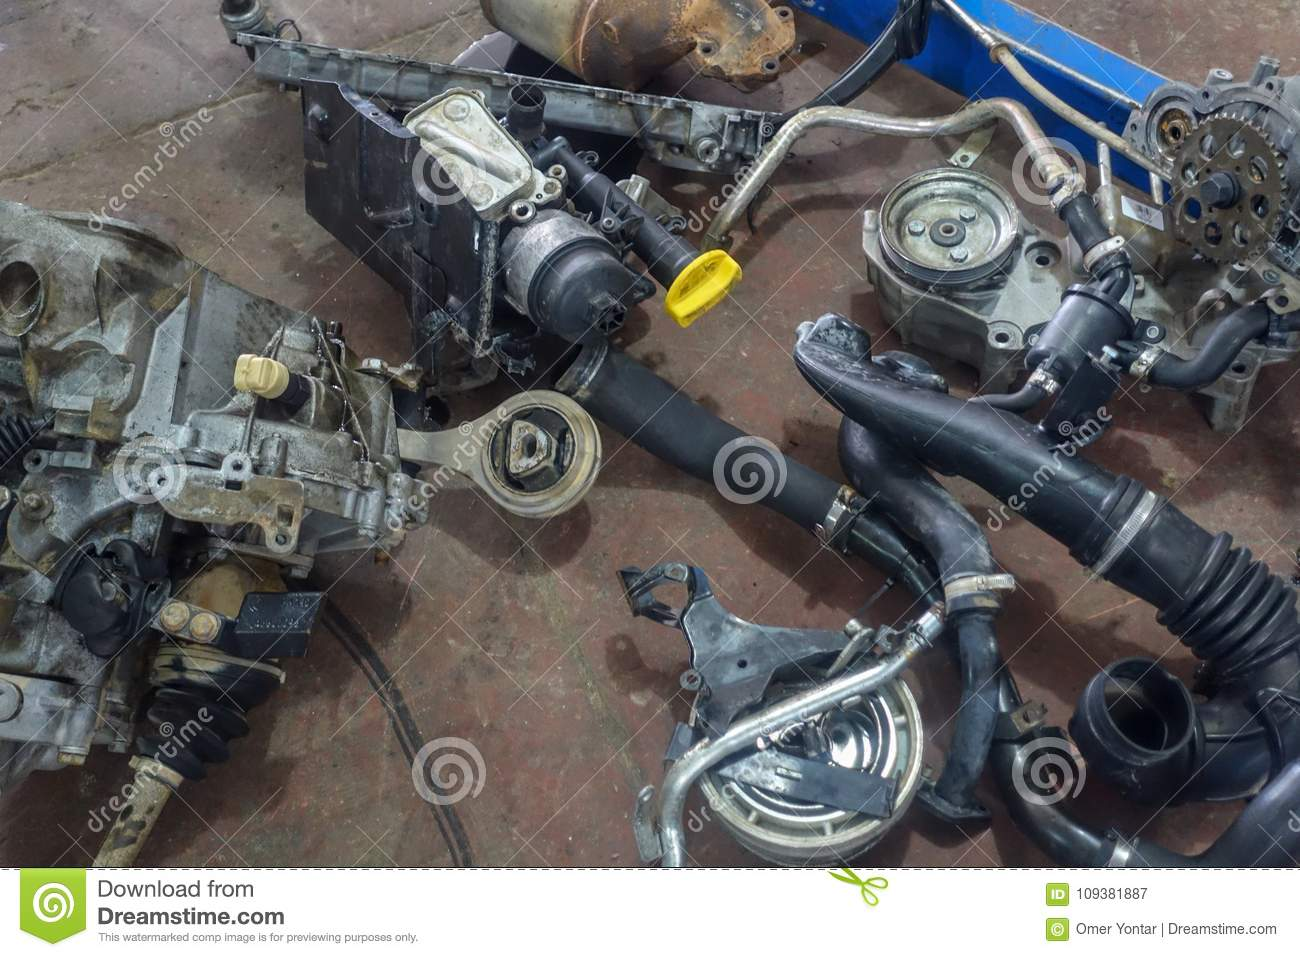 Garage and and car parts stock image. Image of powered - 109381887